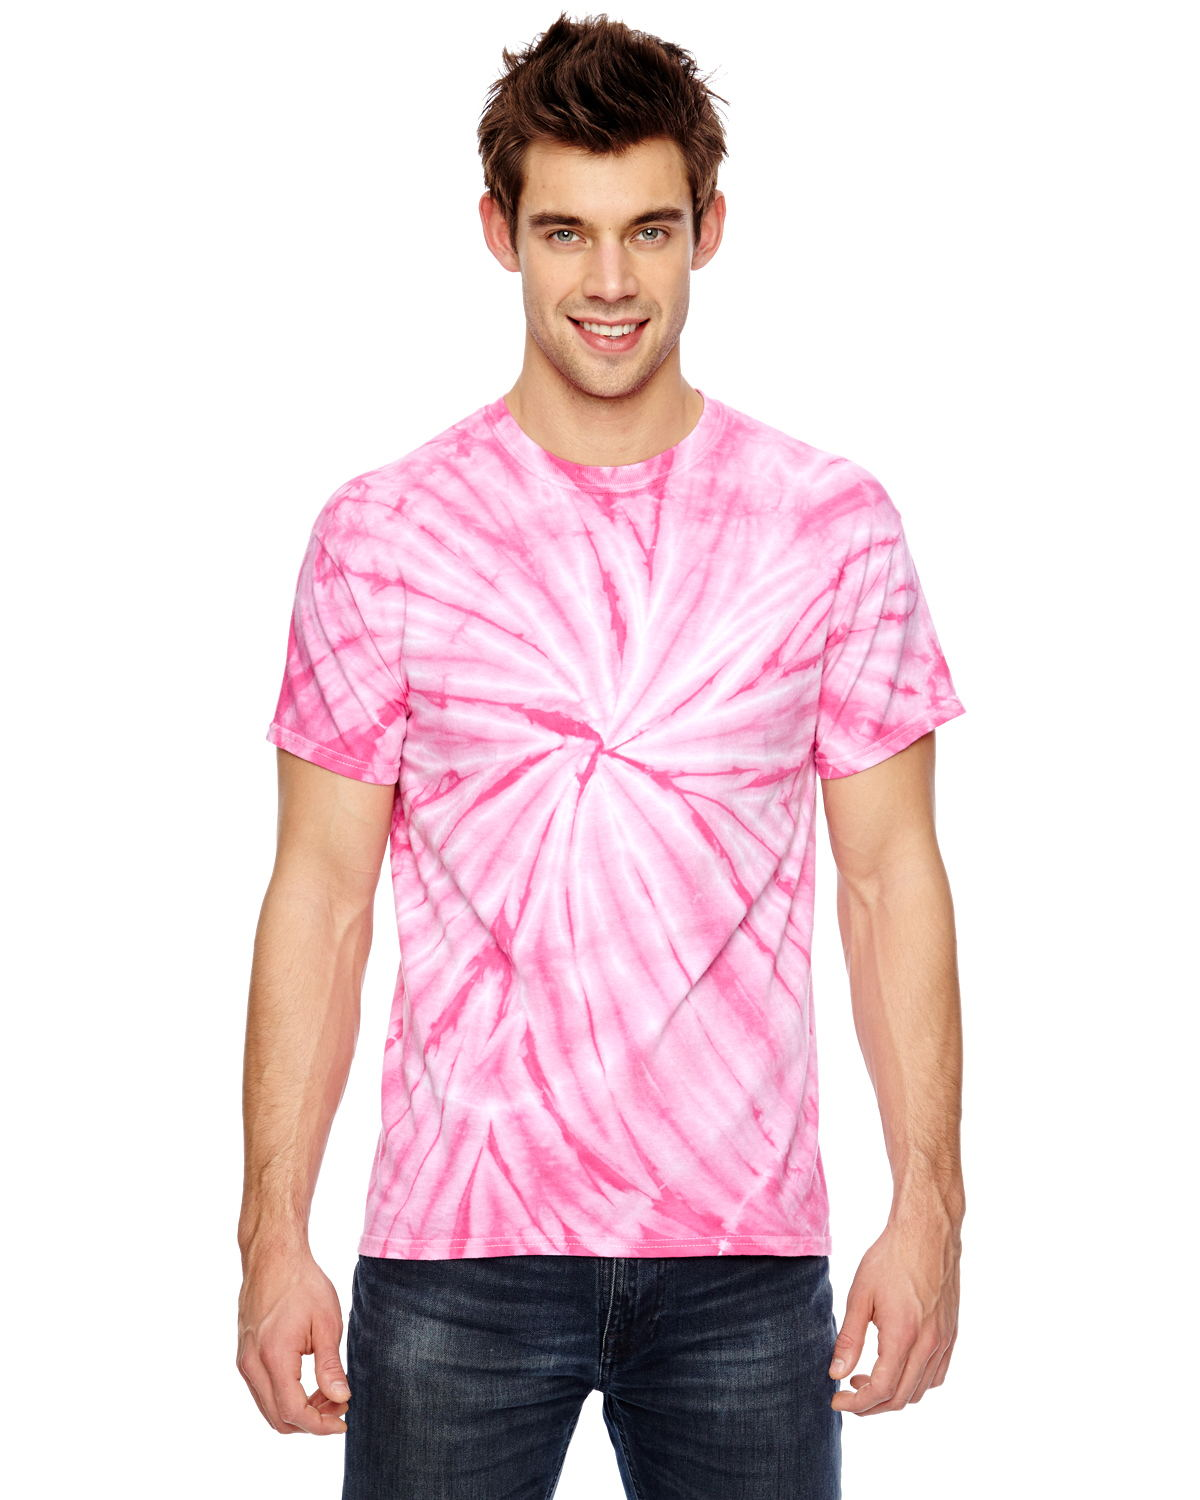 Dyenomite 365CY - Team Tonal Cyclone Tie-Dyed T-Shirt